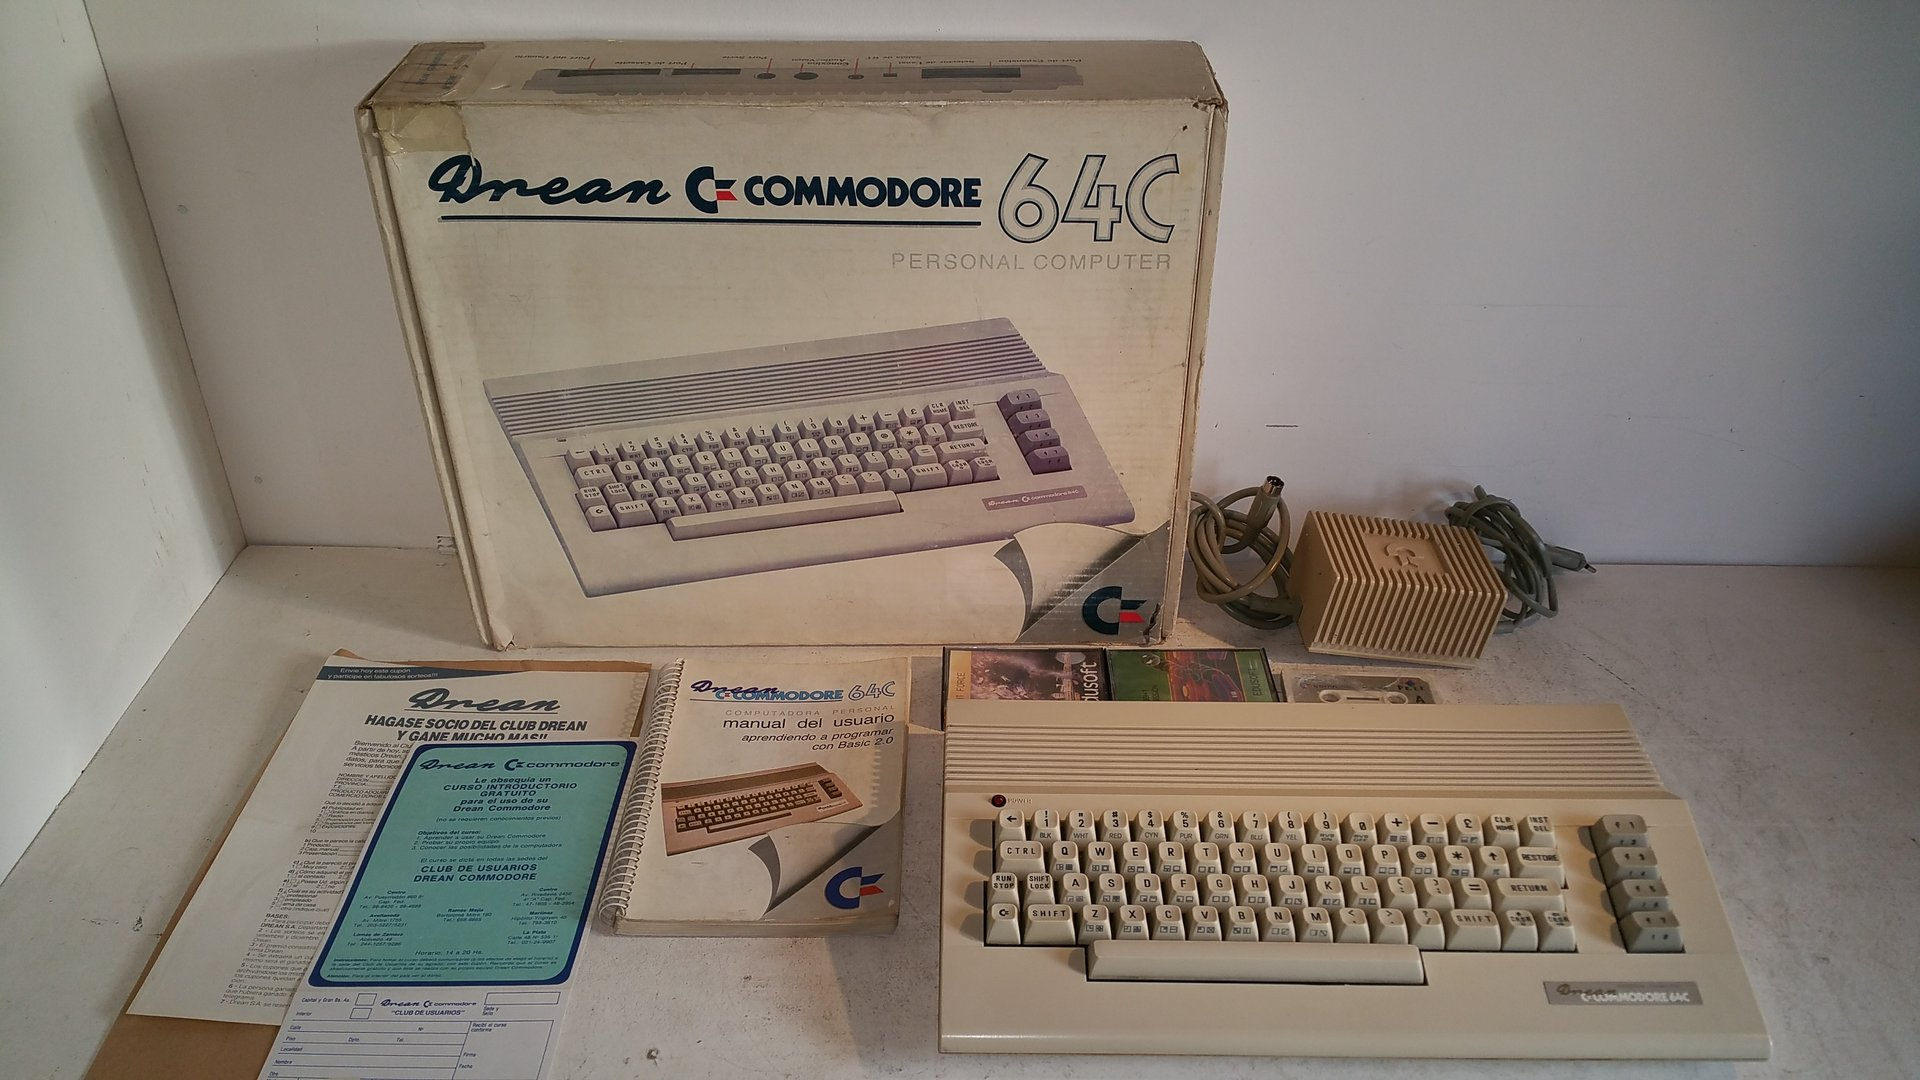 Commodore 64-C 'Drean' Ultra Rare from Argentinia Commodore [Boxed]